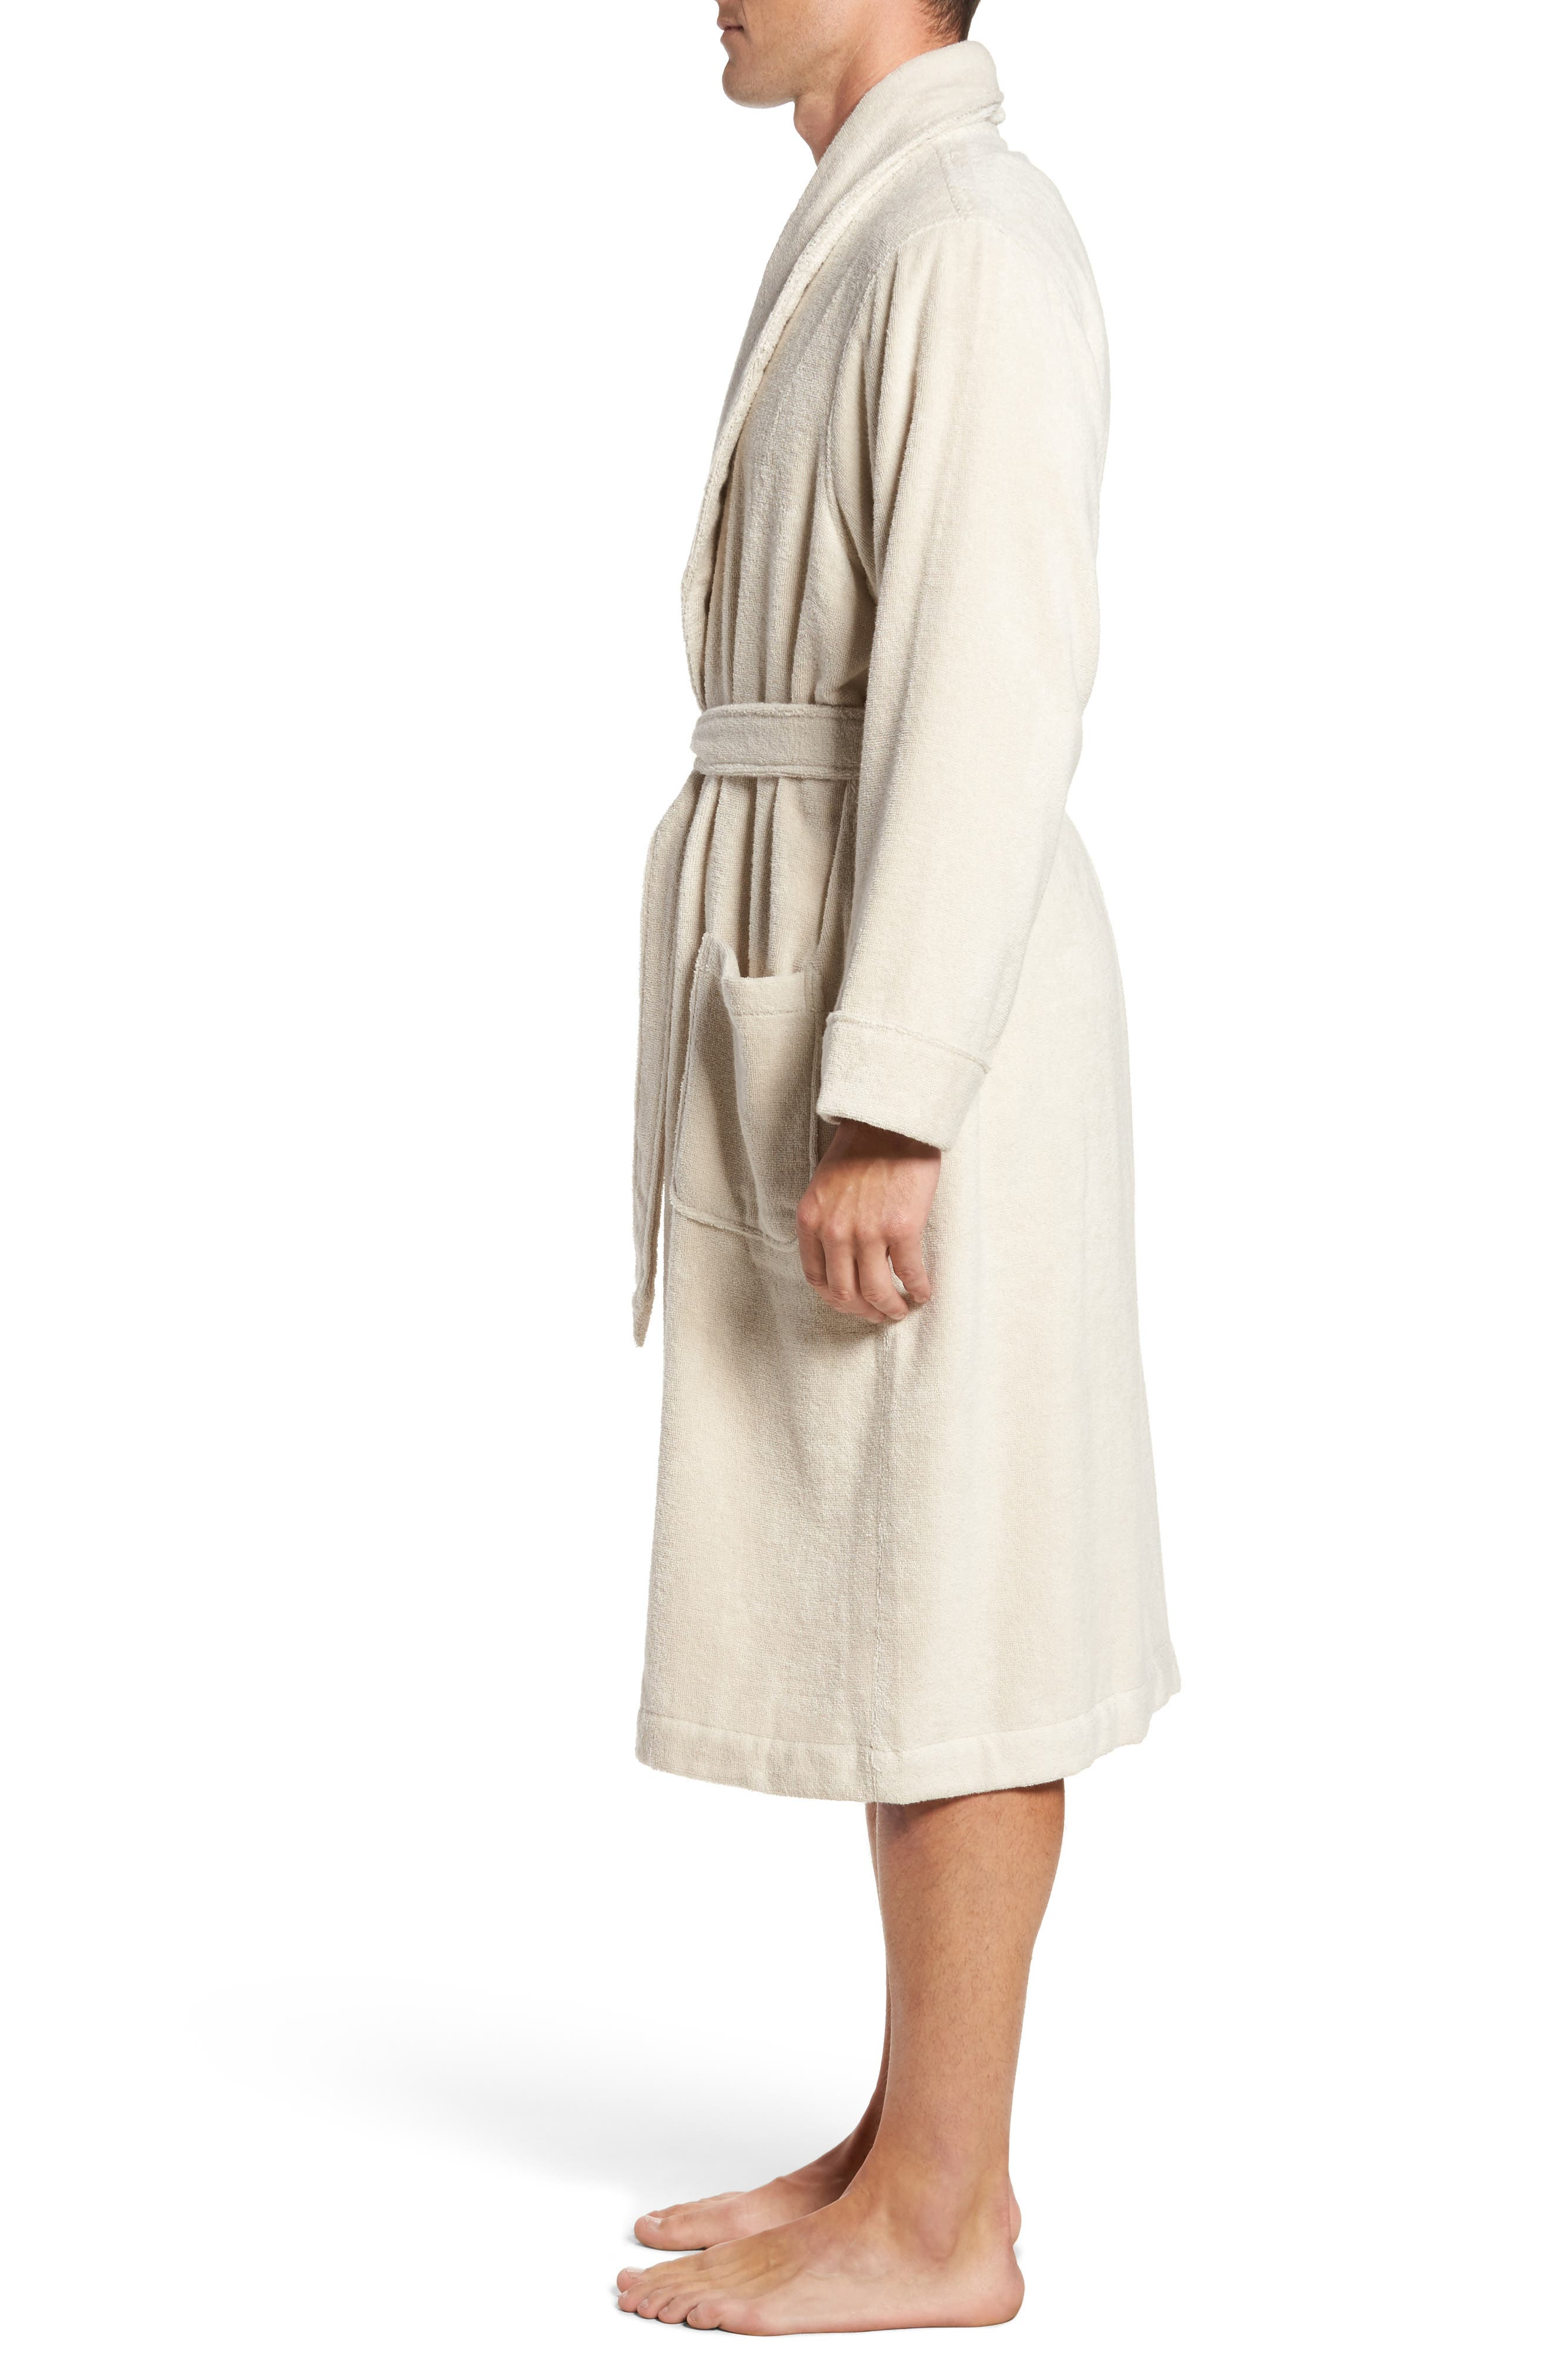 Hydro Cotton Terry Robe,                             Alternate thumbnail 3, color,                             Beige Oatmeal